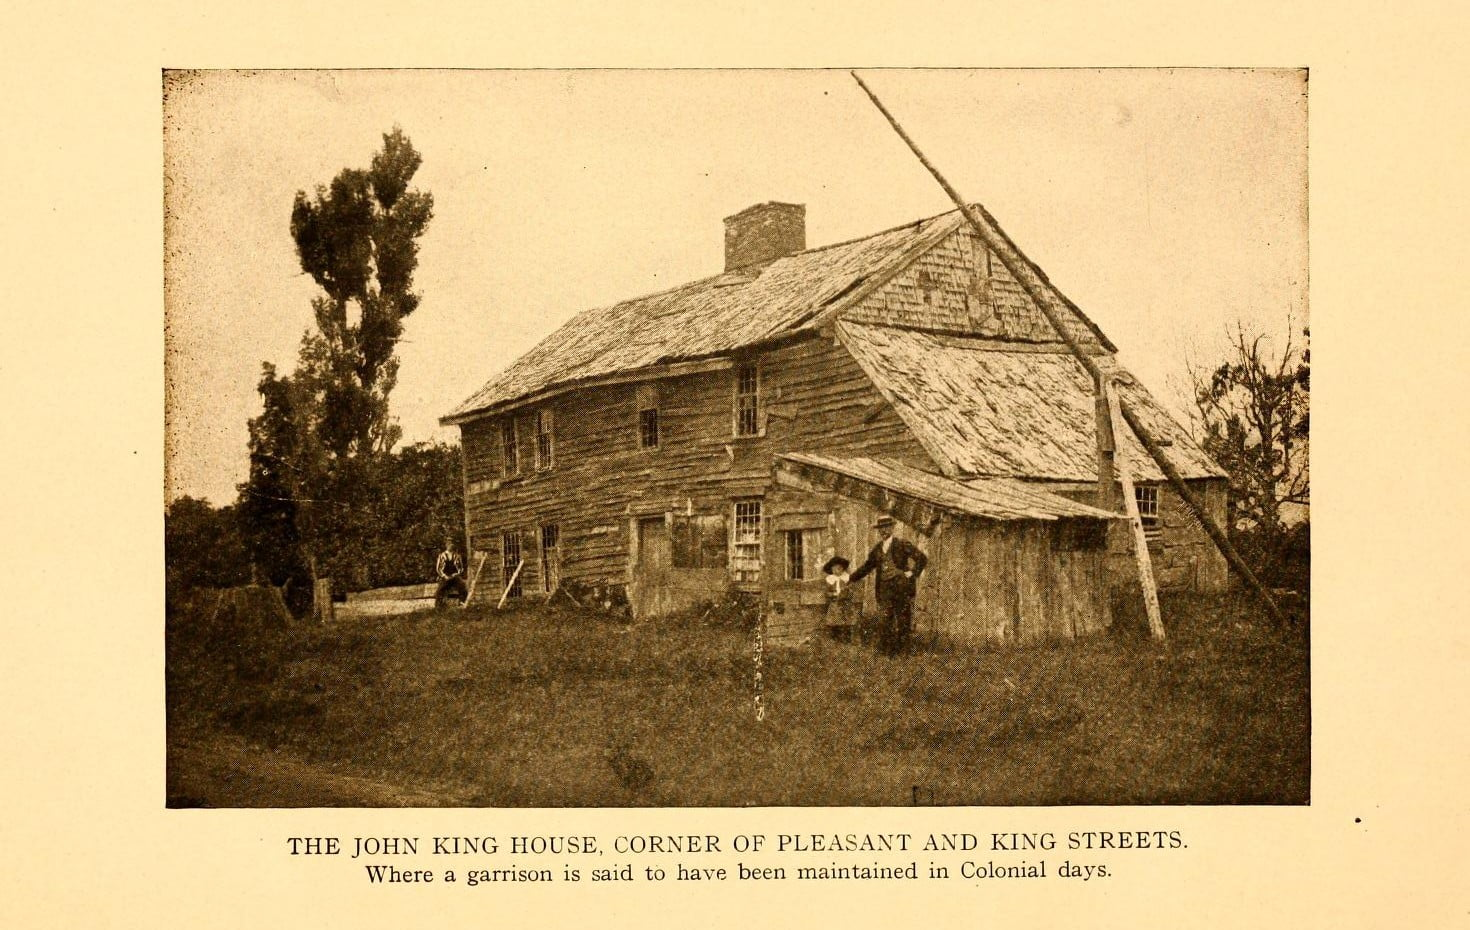 The John King House